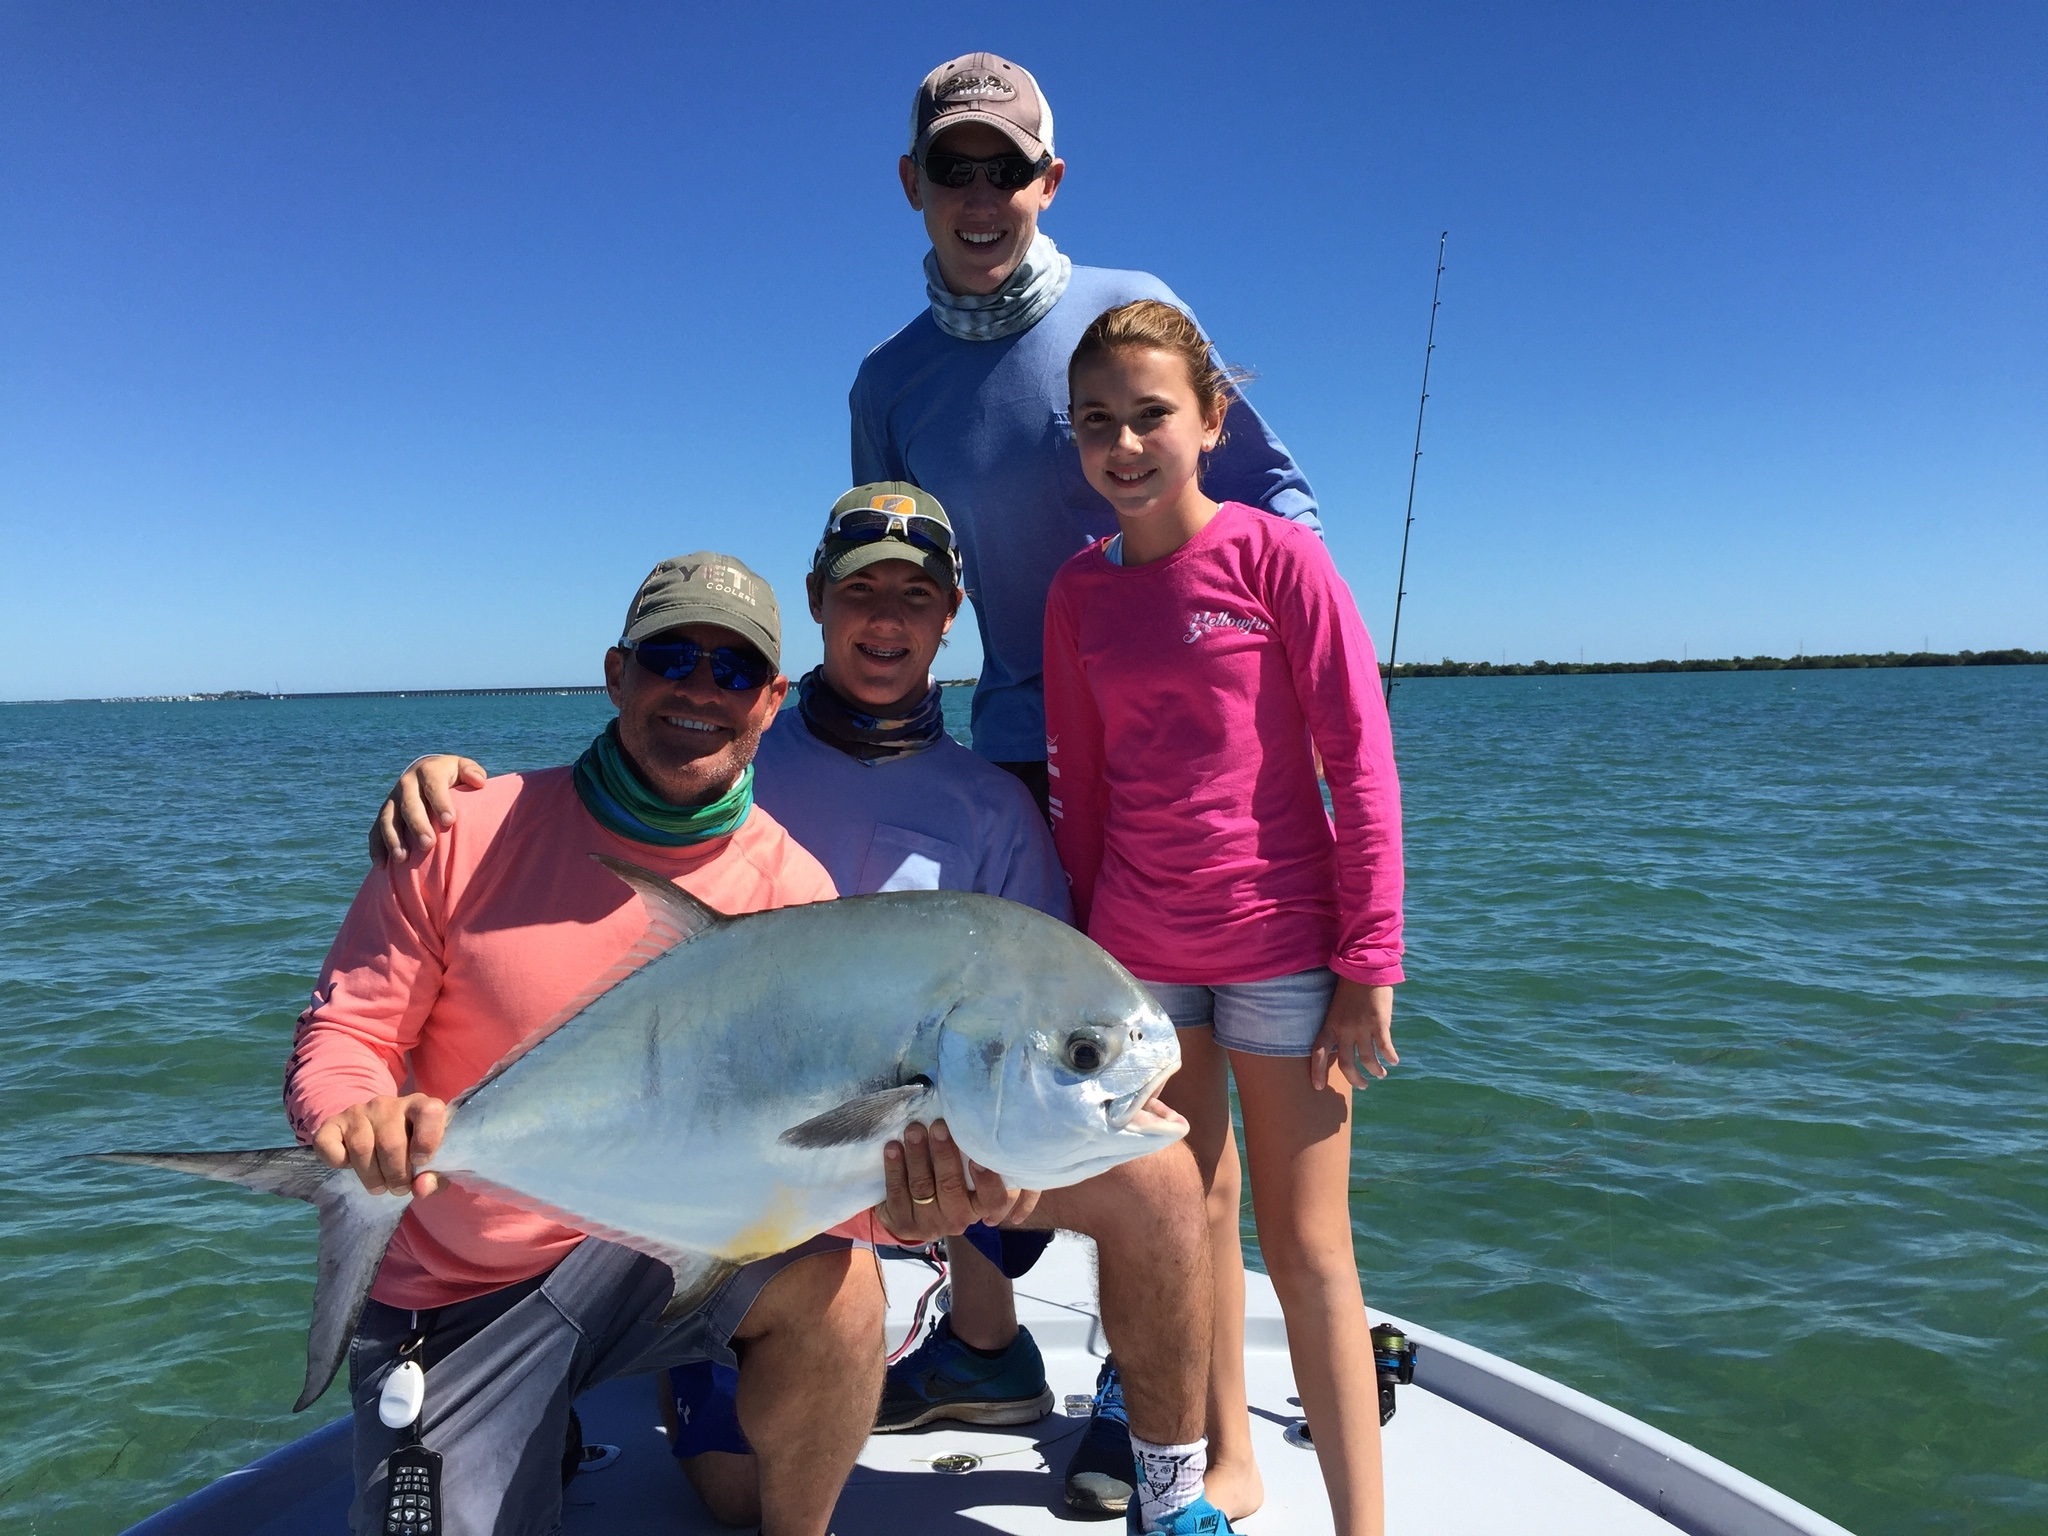 Hayden caught this BEAUTIFUL Permit and my BEAUTIFUL wife got a picture of me, Turner, Hayden and Hanna with it!